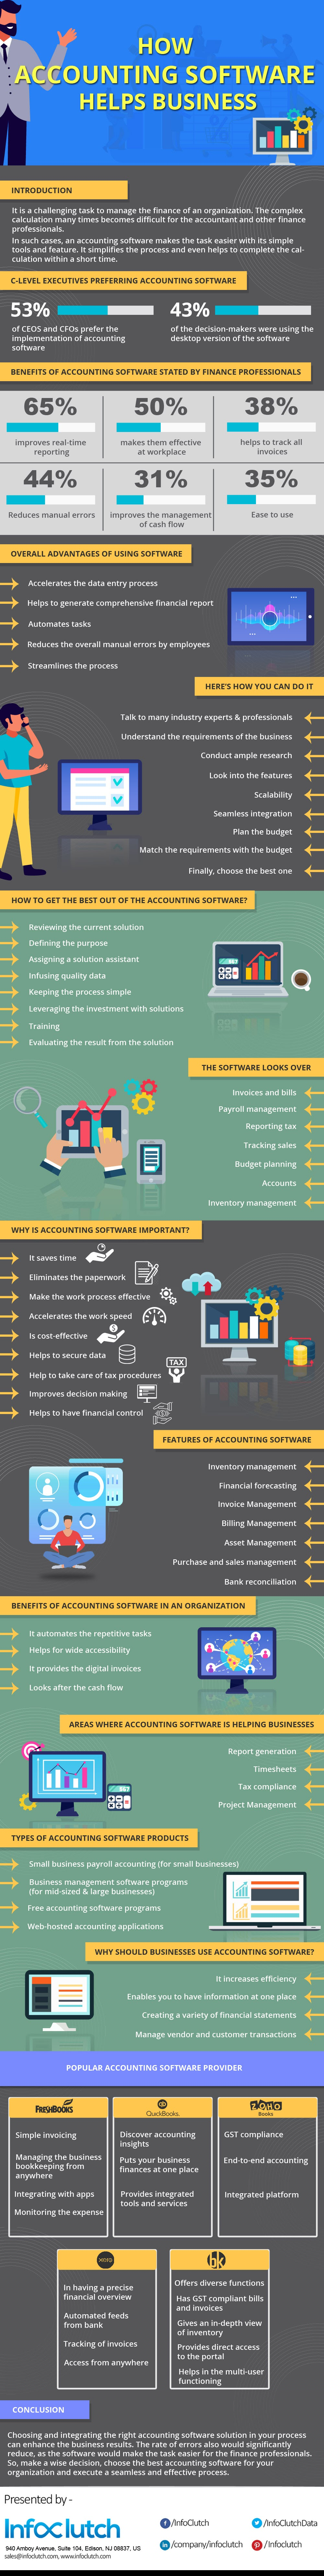 How Accounting Software Helps Business? #infographic